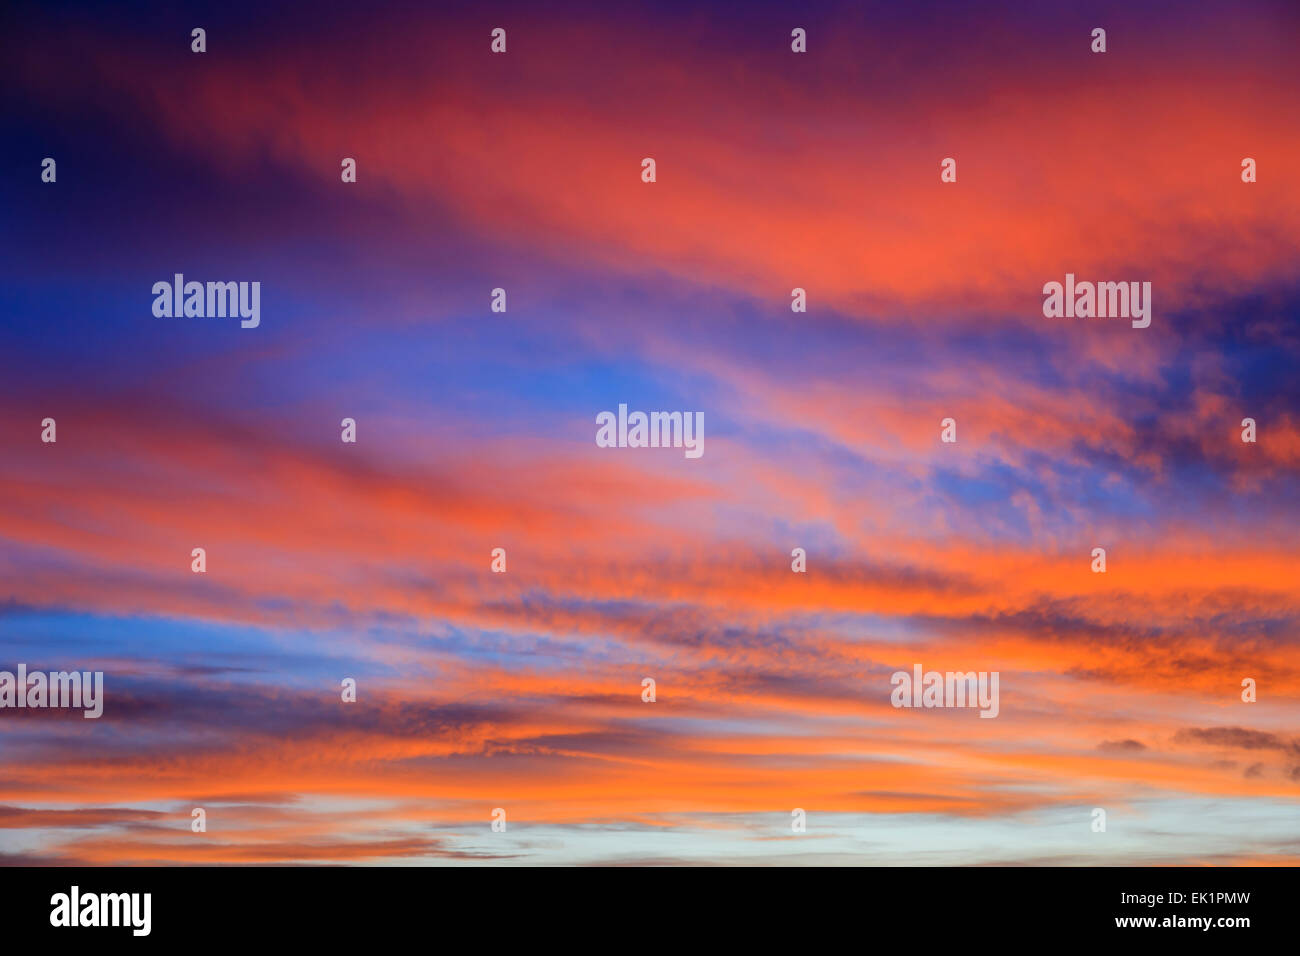 Firey September evening skyscape with clouds lit by the red sunset against a darkening blue sky. England, UK, Britain - Stock Image